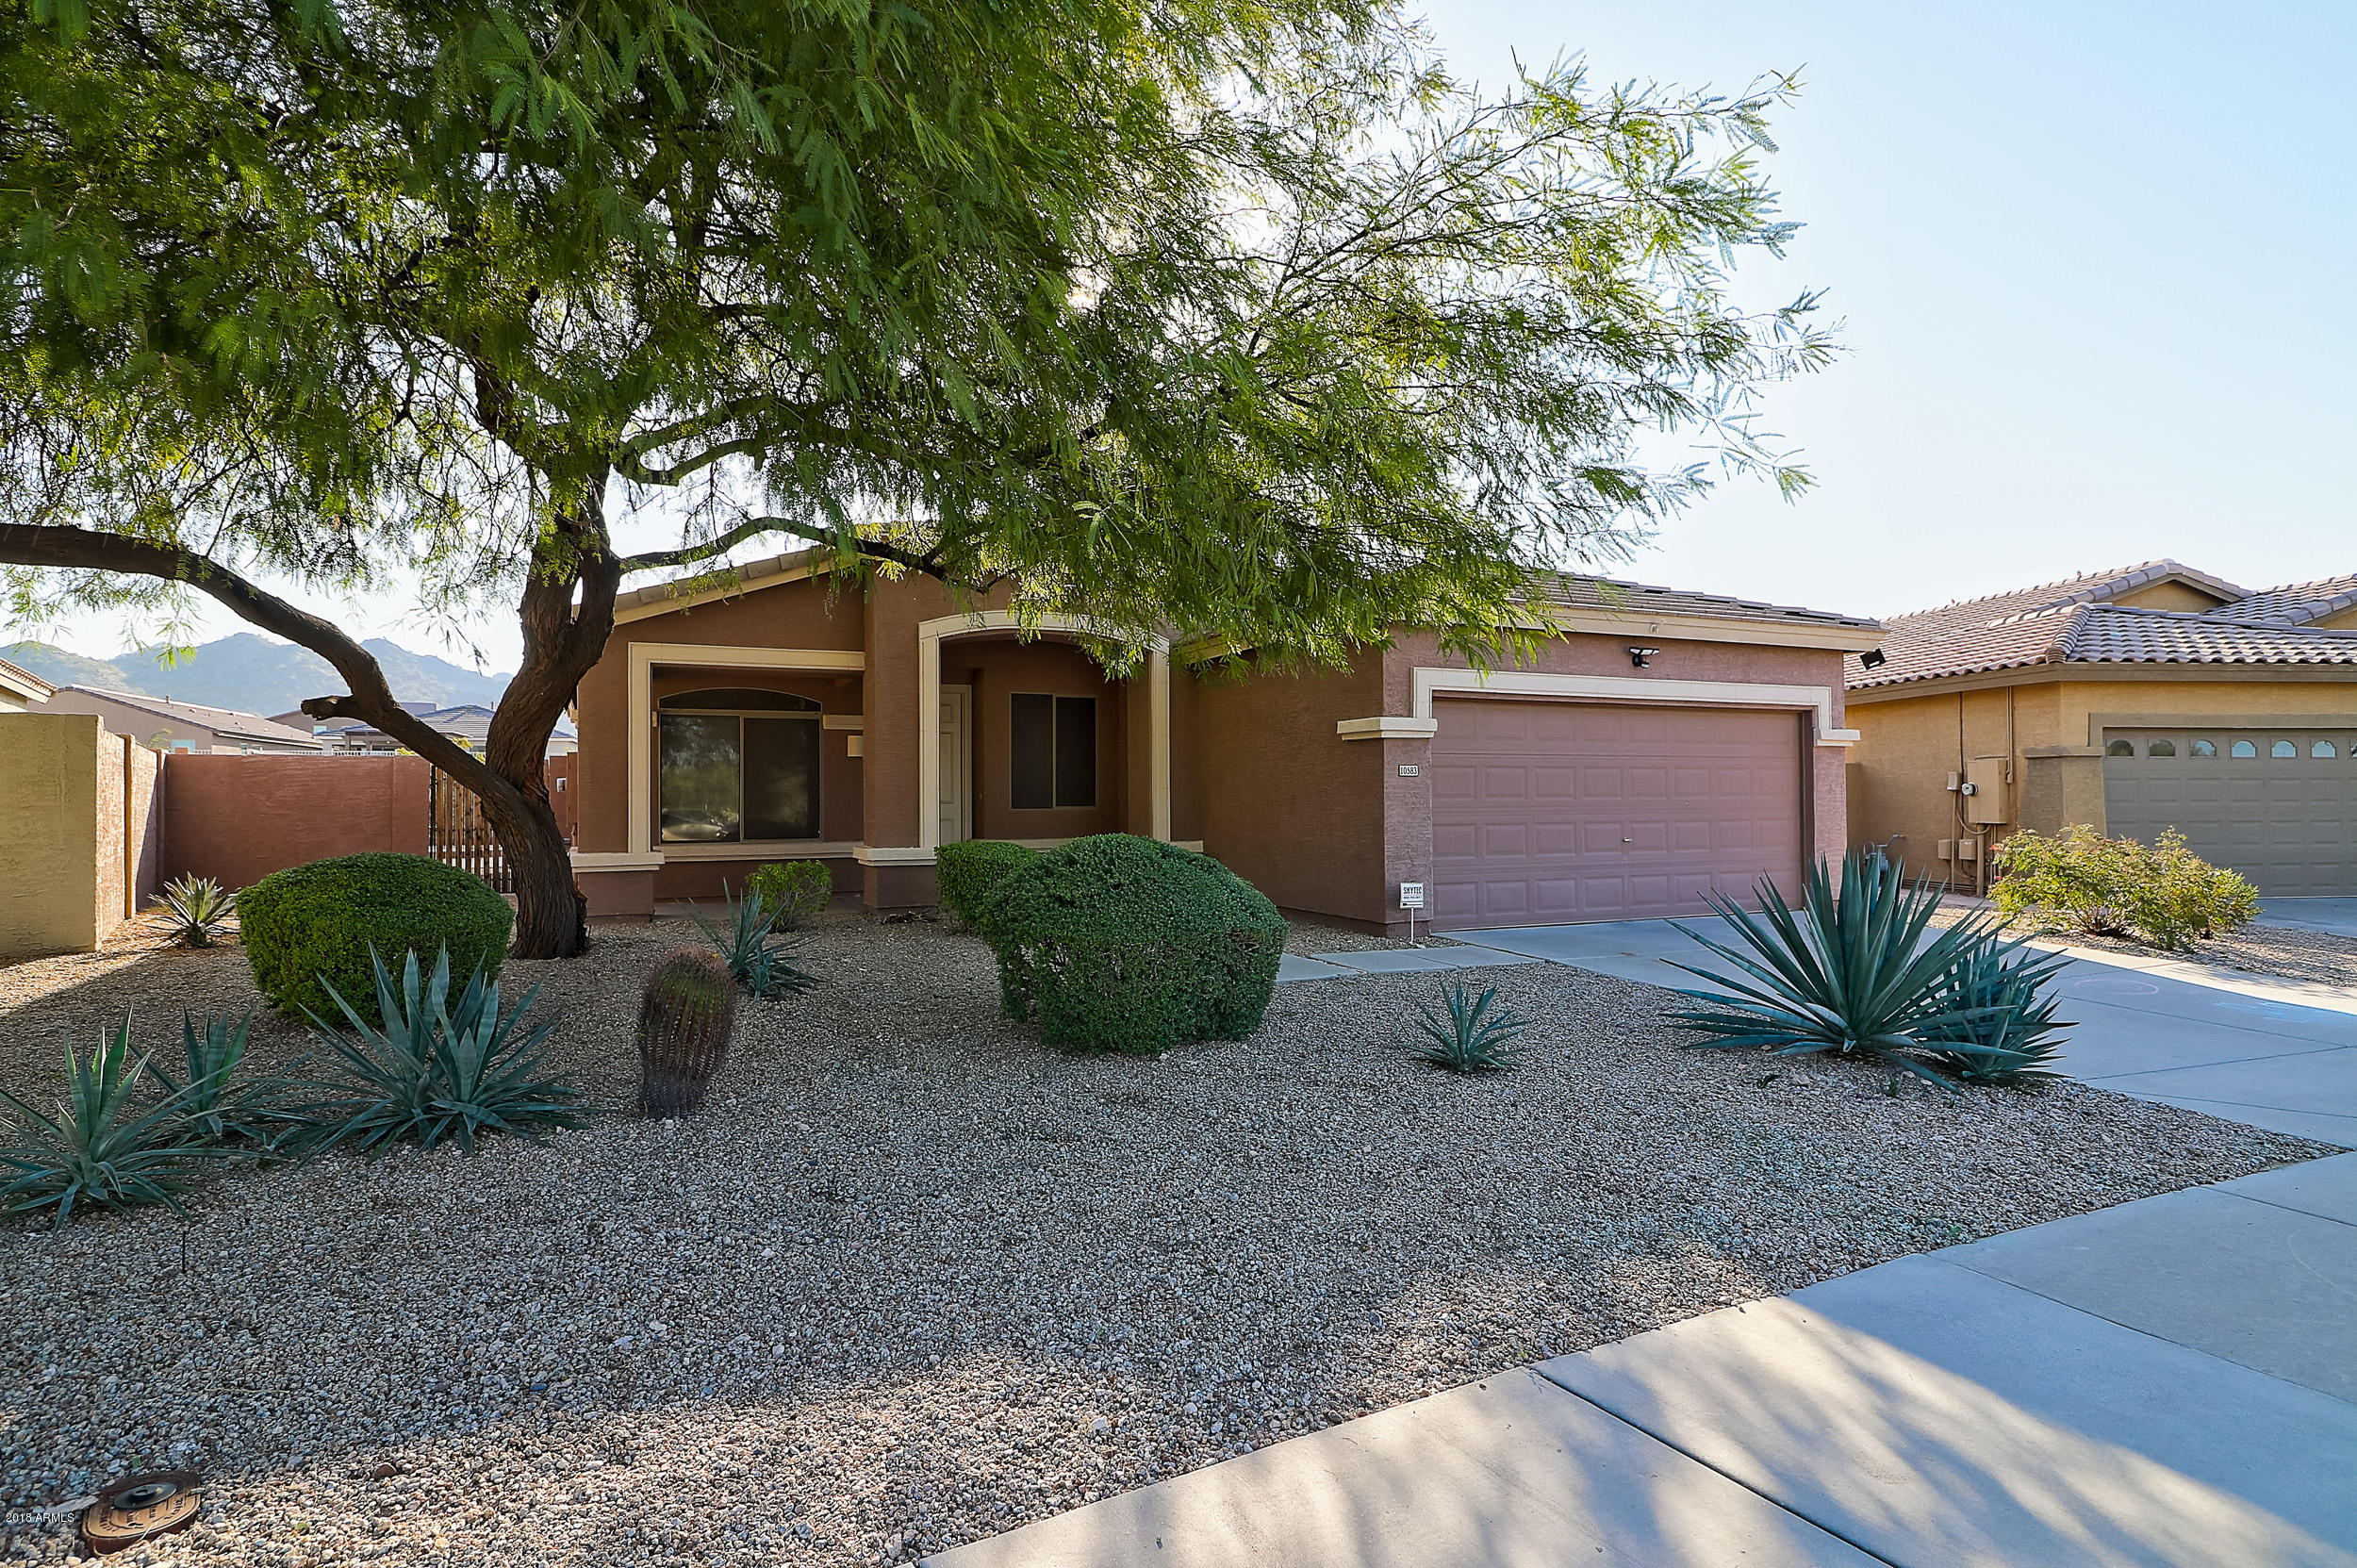 10583 S 175TH Avenue, Goodyear, AZ 85338, 3 Bedrooms Bedrooms, ,Residential Lease,For Rent,10583 S 175TH Avenue,6062944